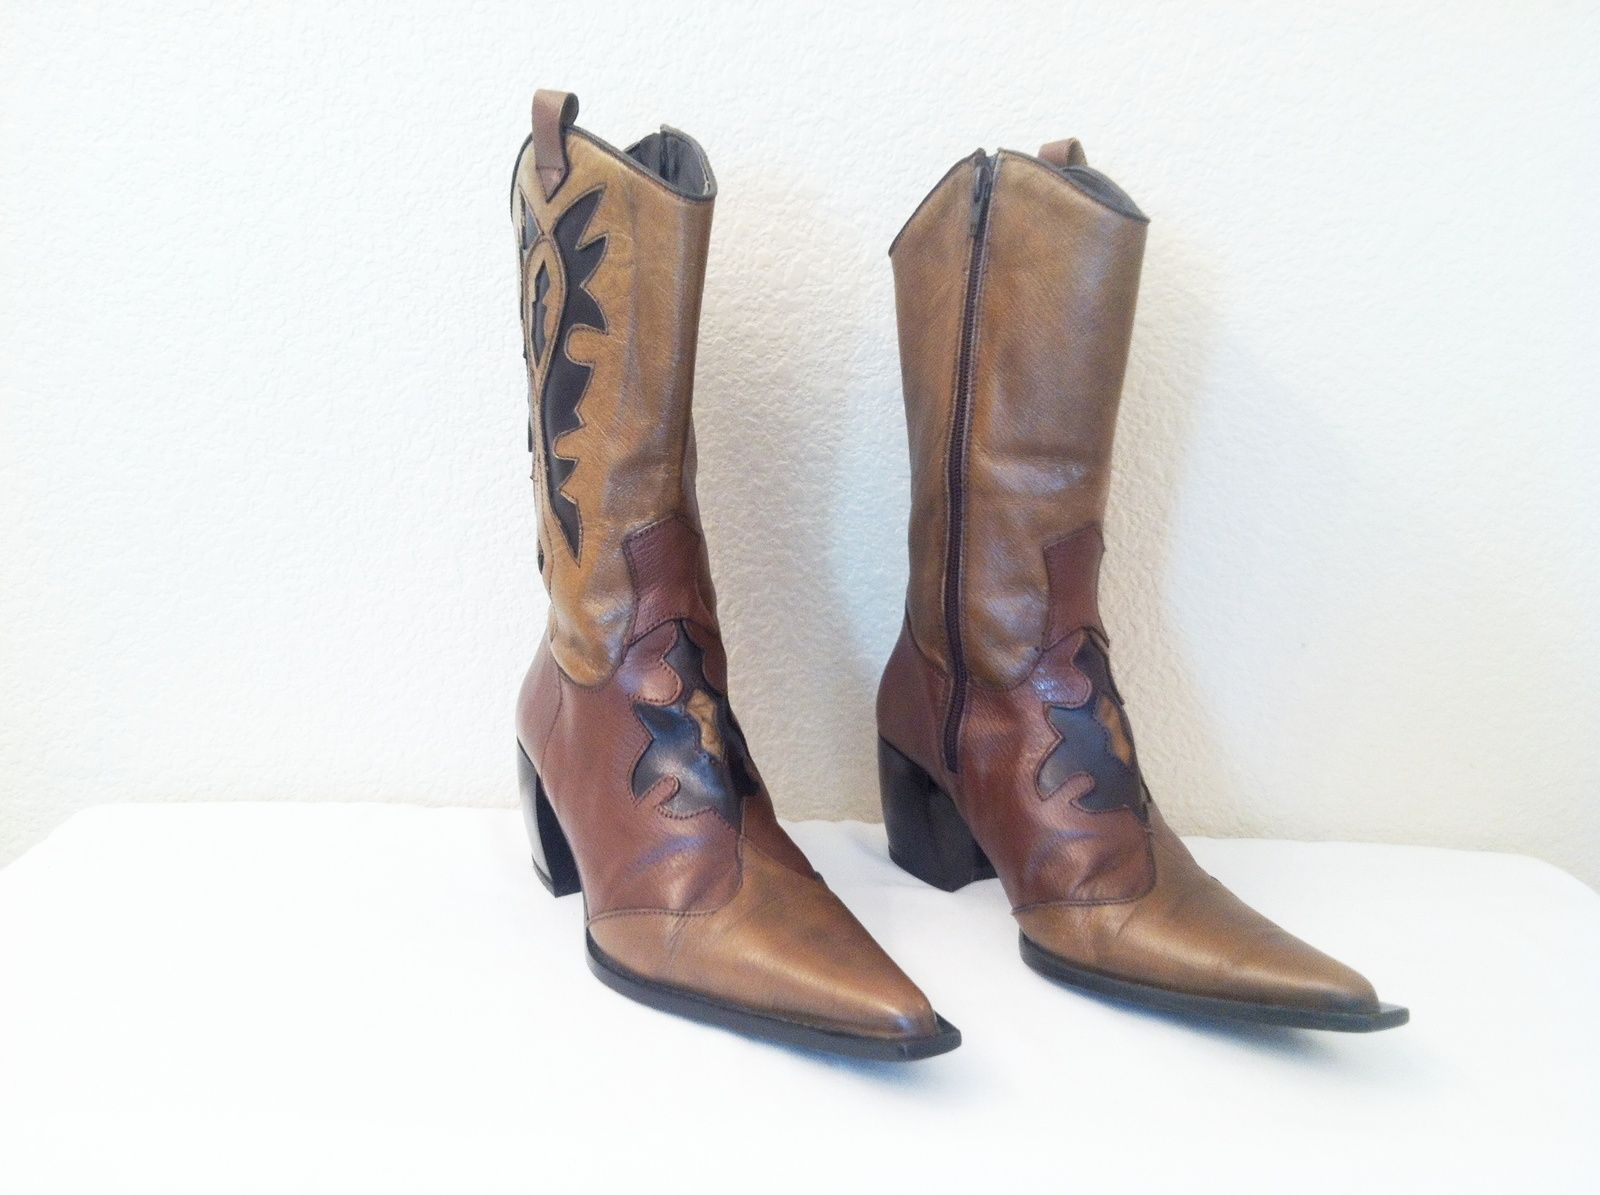 Western Cowgirl Boots - $36